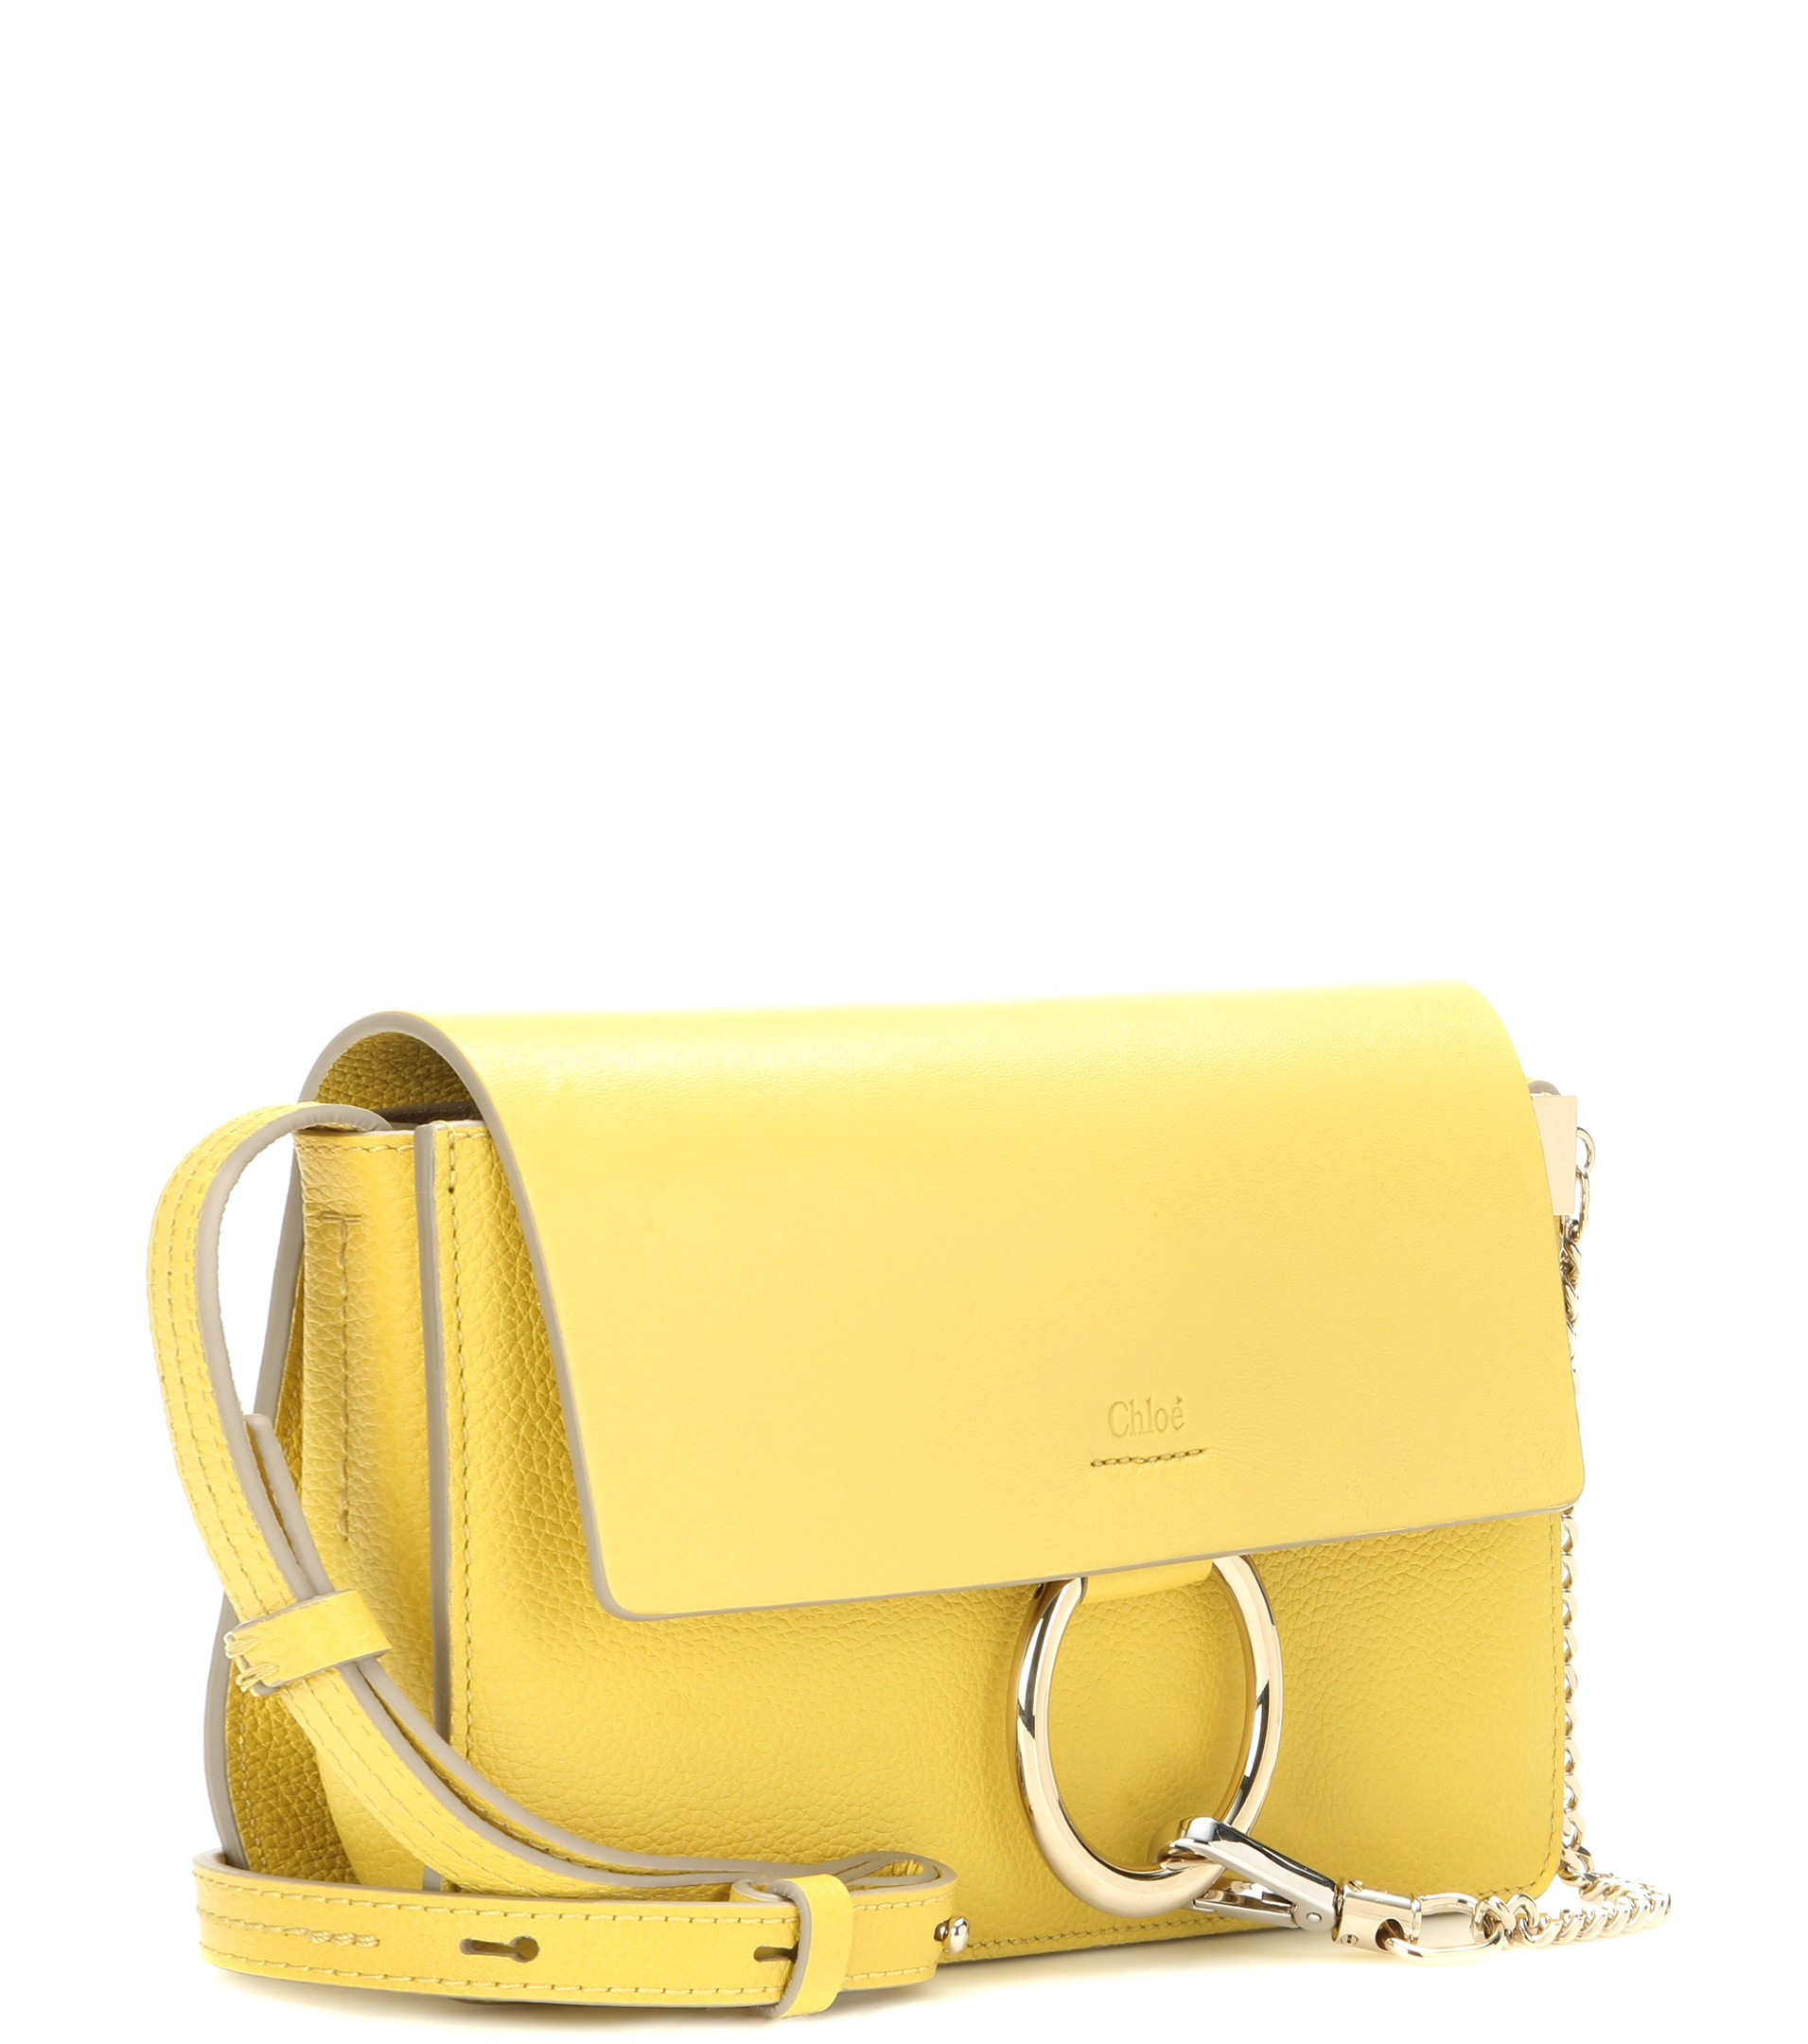 Chloé Faye Small Leather Shoulder Bag in Yellow | Lyst